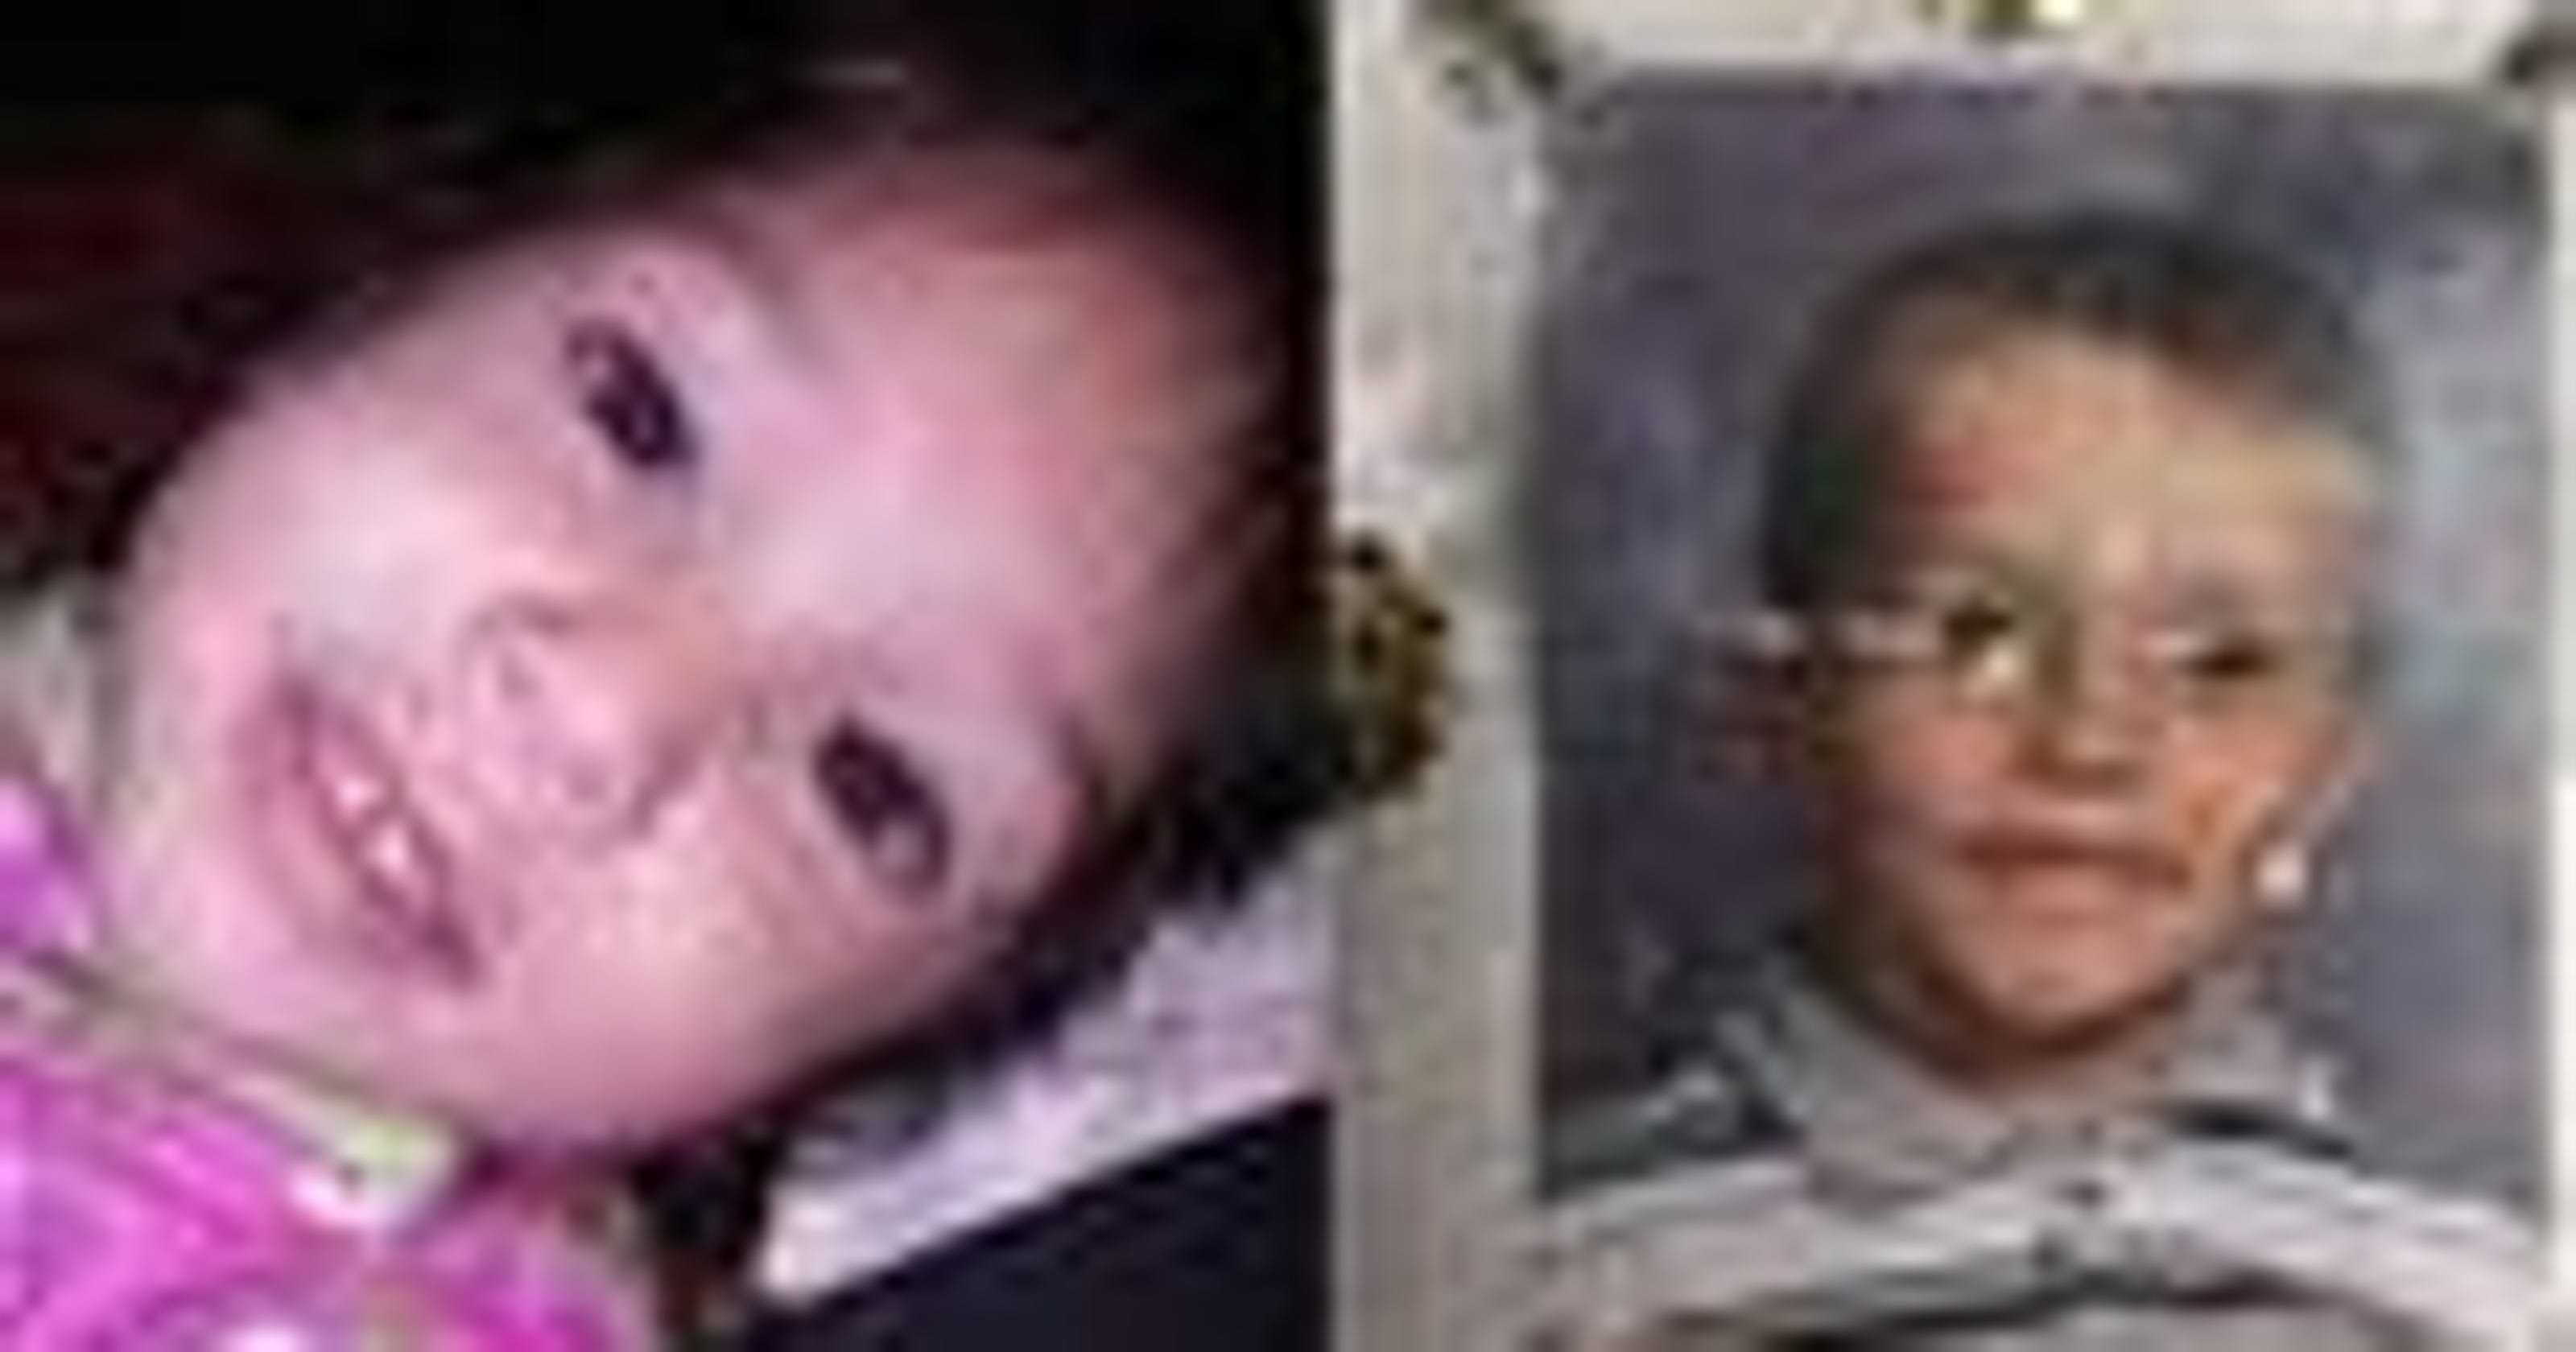 History with murdered children released